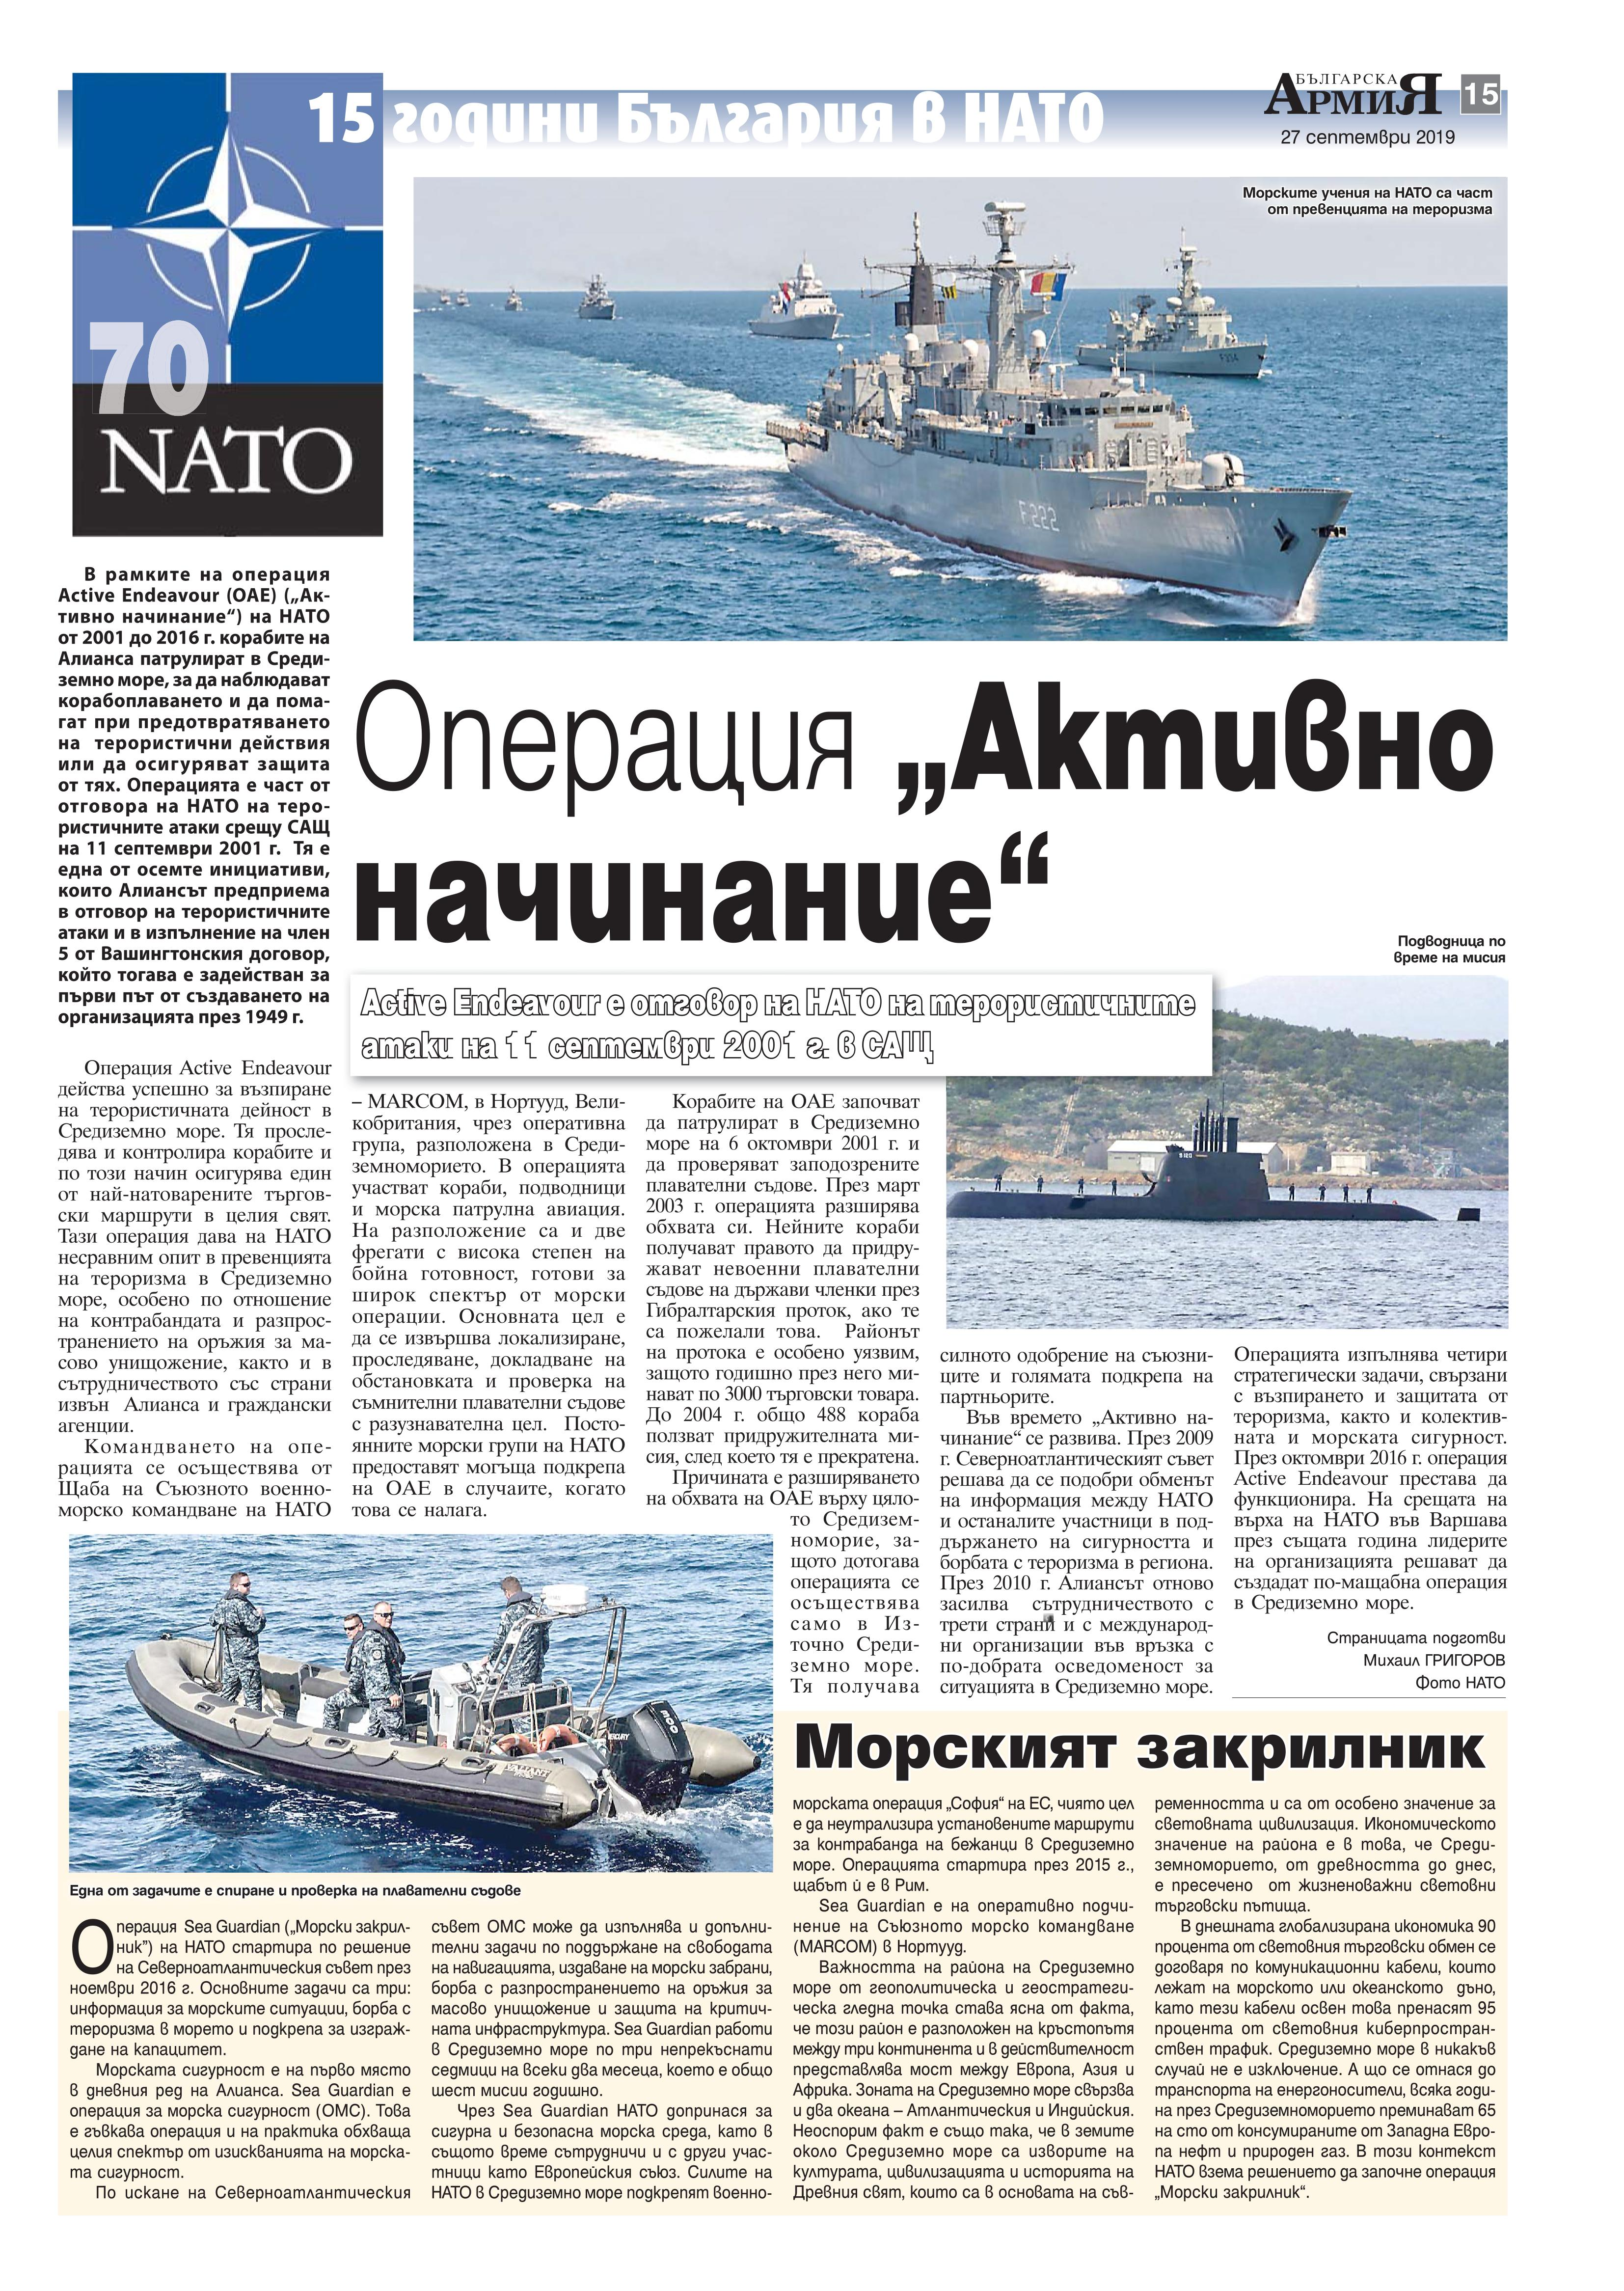 https://www.armymedia.bg/wp-content/uploads/2015/06/15.page1_-110.jpg